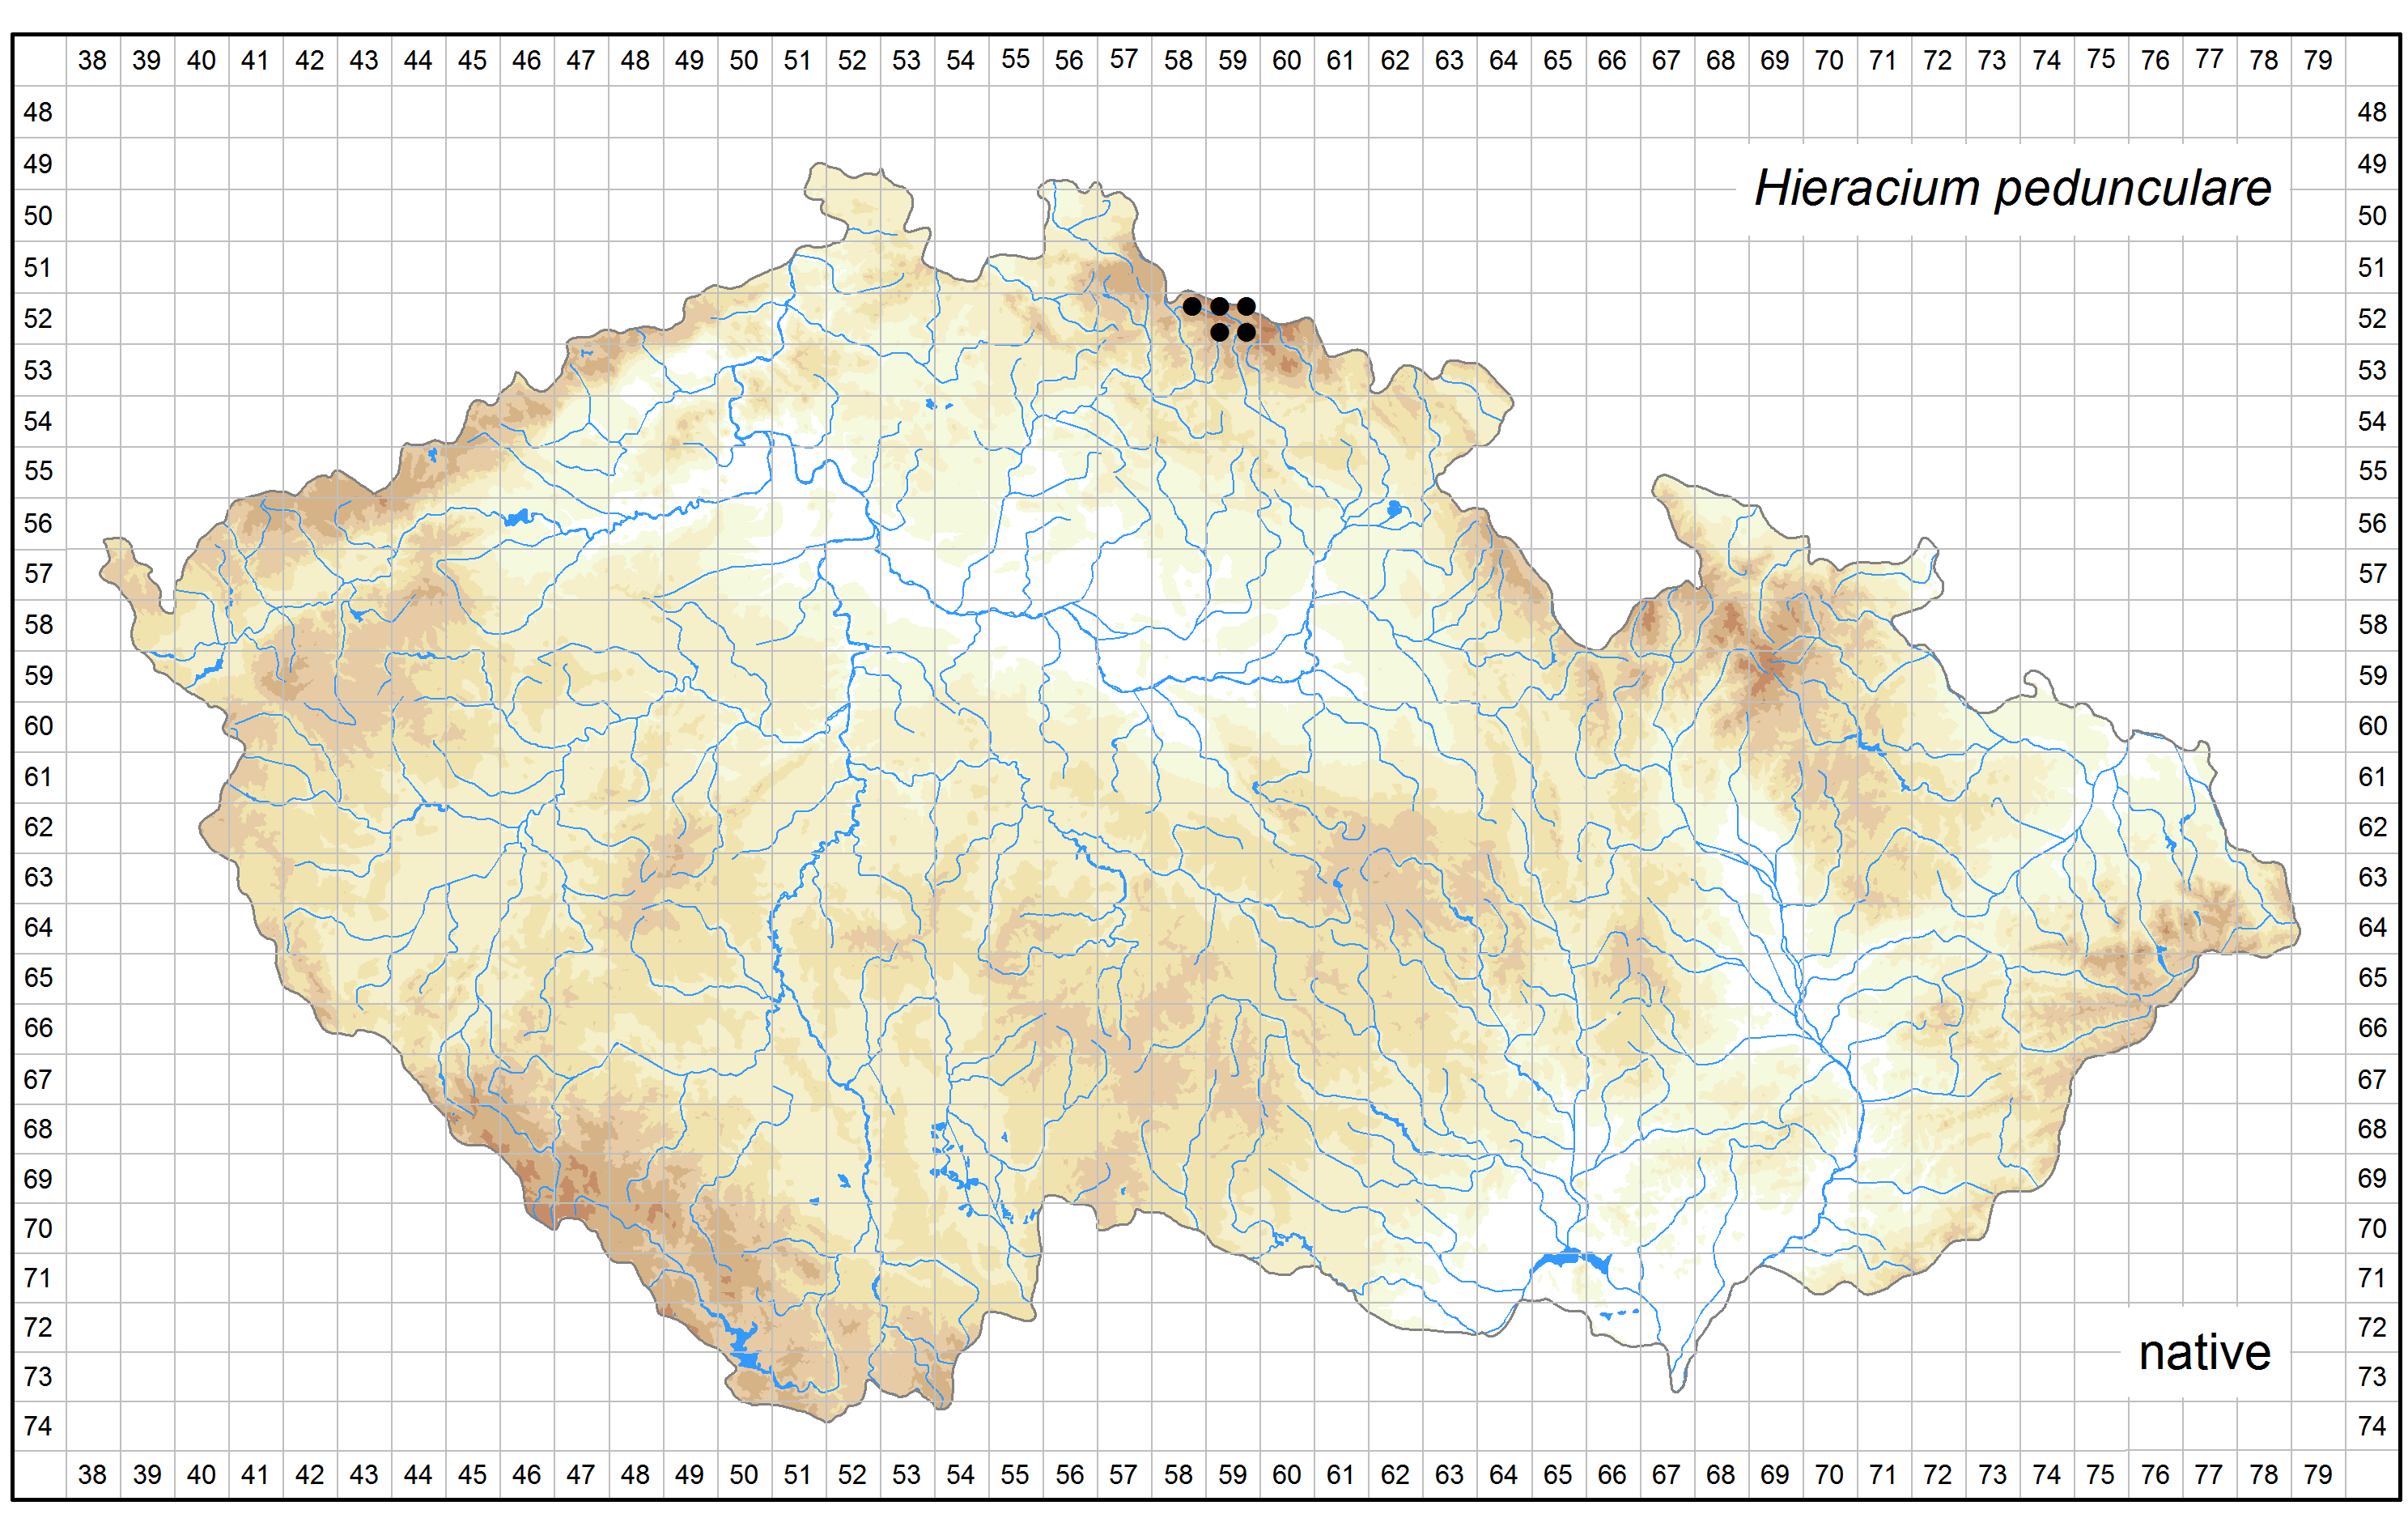 Distribution of Hieracium pedunculare in the Czech Republic Author of the map: Jindřich Chrtek Map produced on: 11-11-2016 Database records used for producing the distribution map of Hieracium